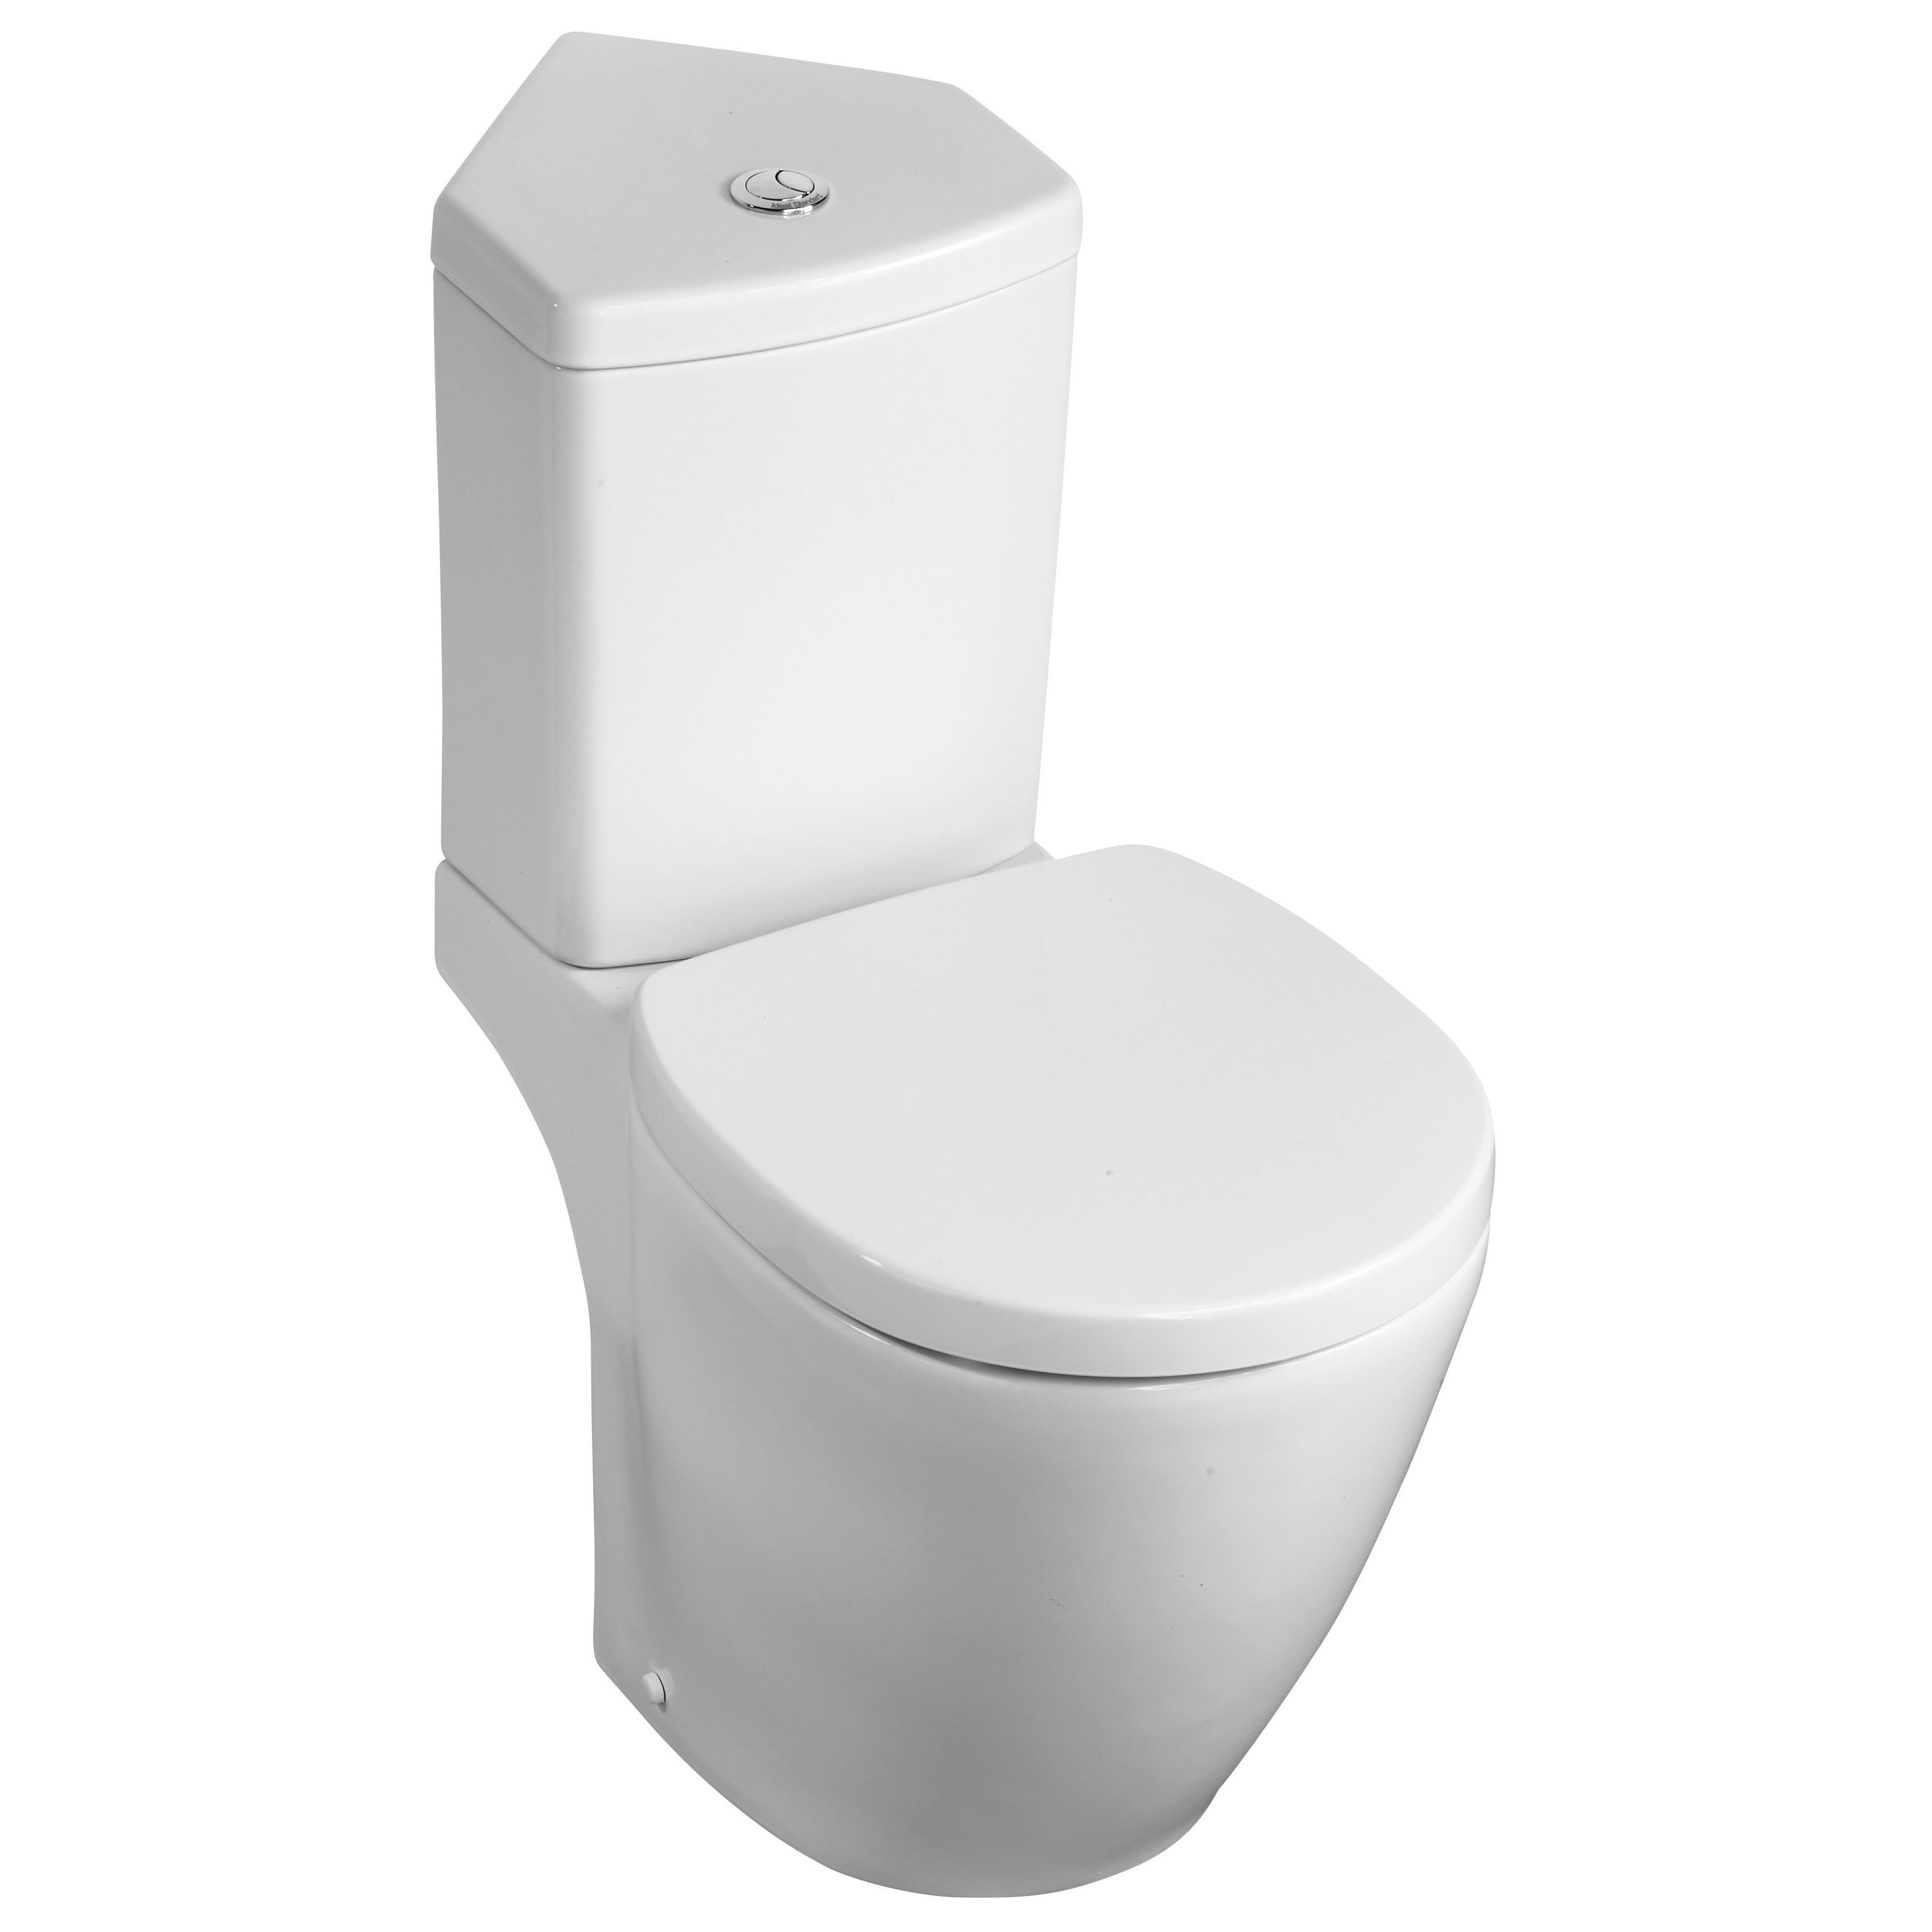 Corner Toilet : ... Compact Contemporary Close-Coupled Corner Toilet with Soft Close Seat